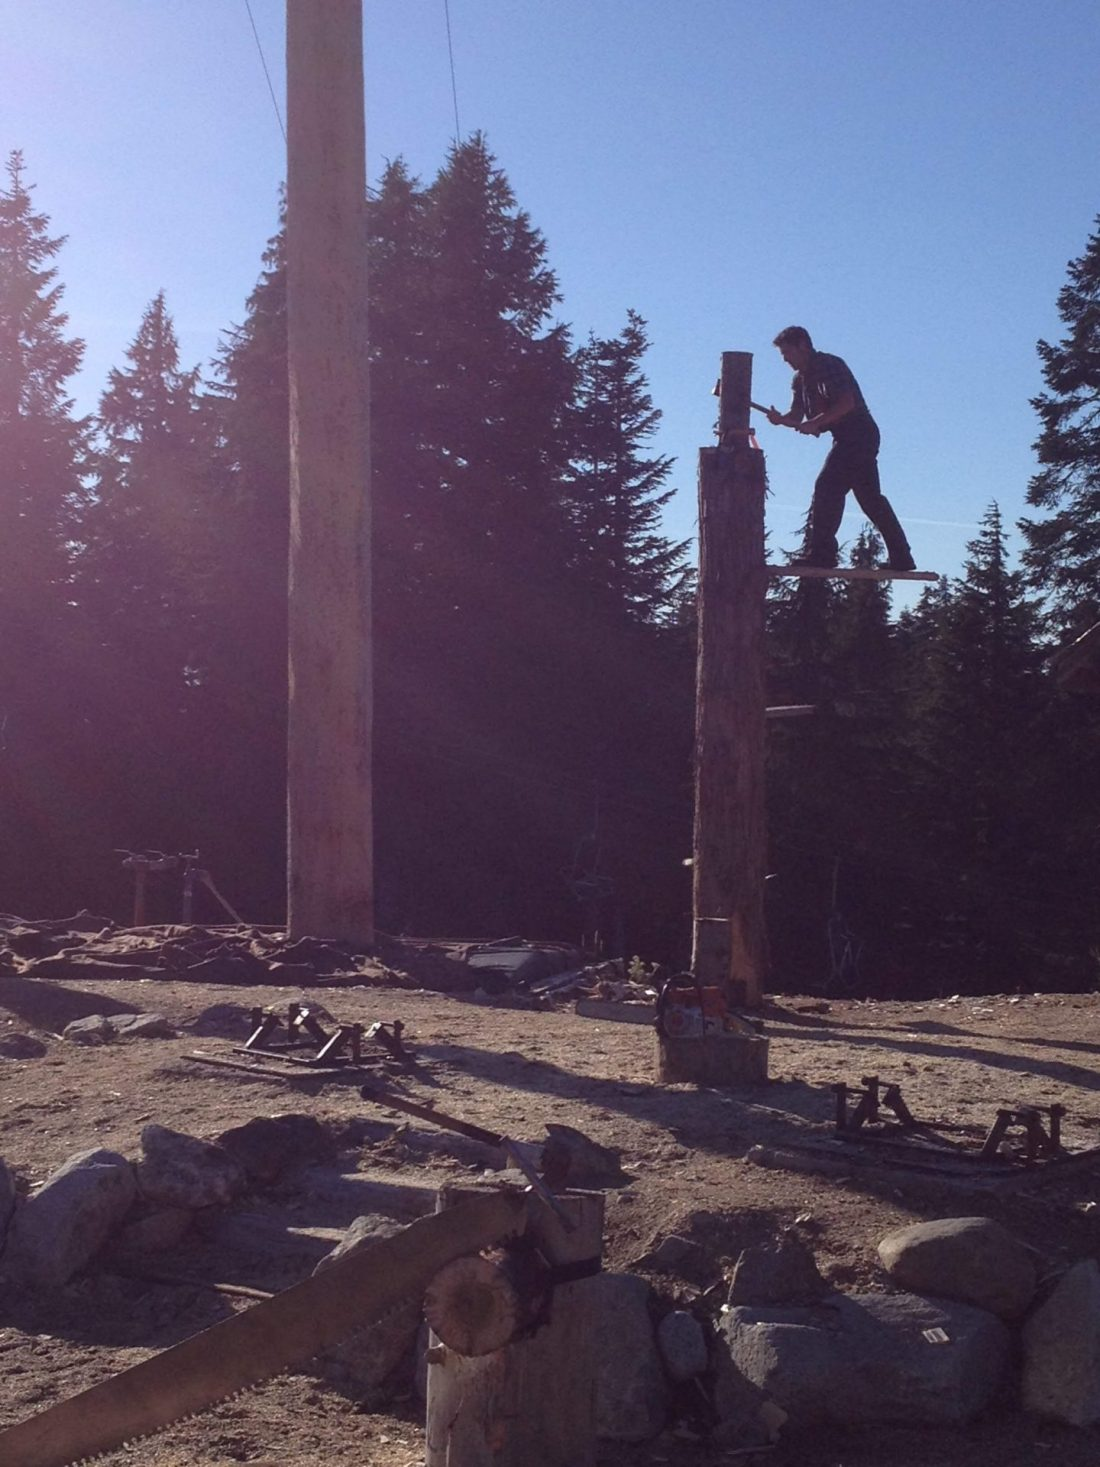 Lumberjack show at the top of the mountain in Vancouver